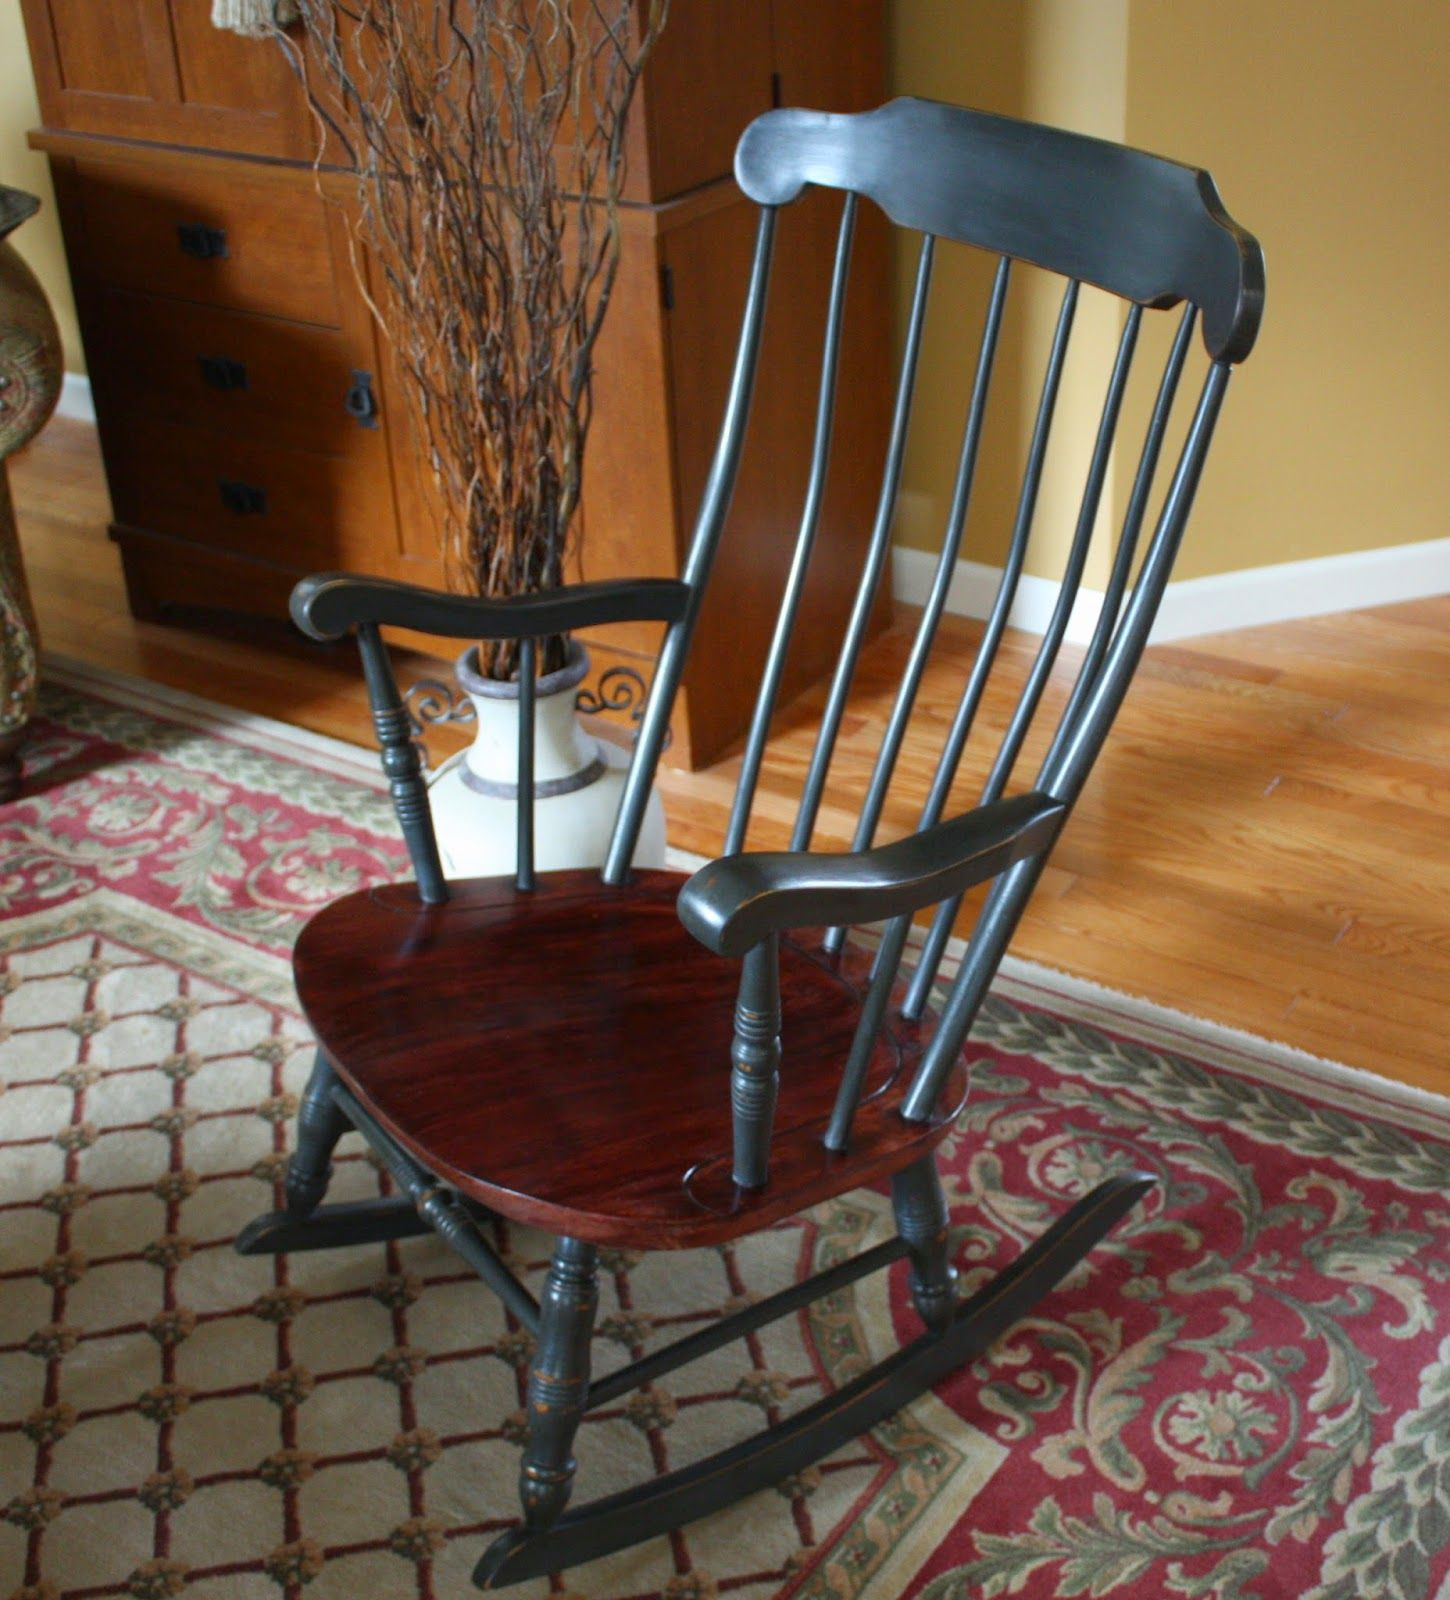 Antique Colonial Rocking Chair. Annie Sloan Chalk Paint Graphite. Hand  waxed an buffed. - Antique Colonial Rocking Chair Hand Painted Furniture The Black